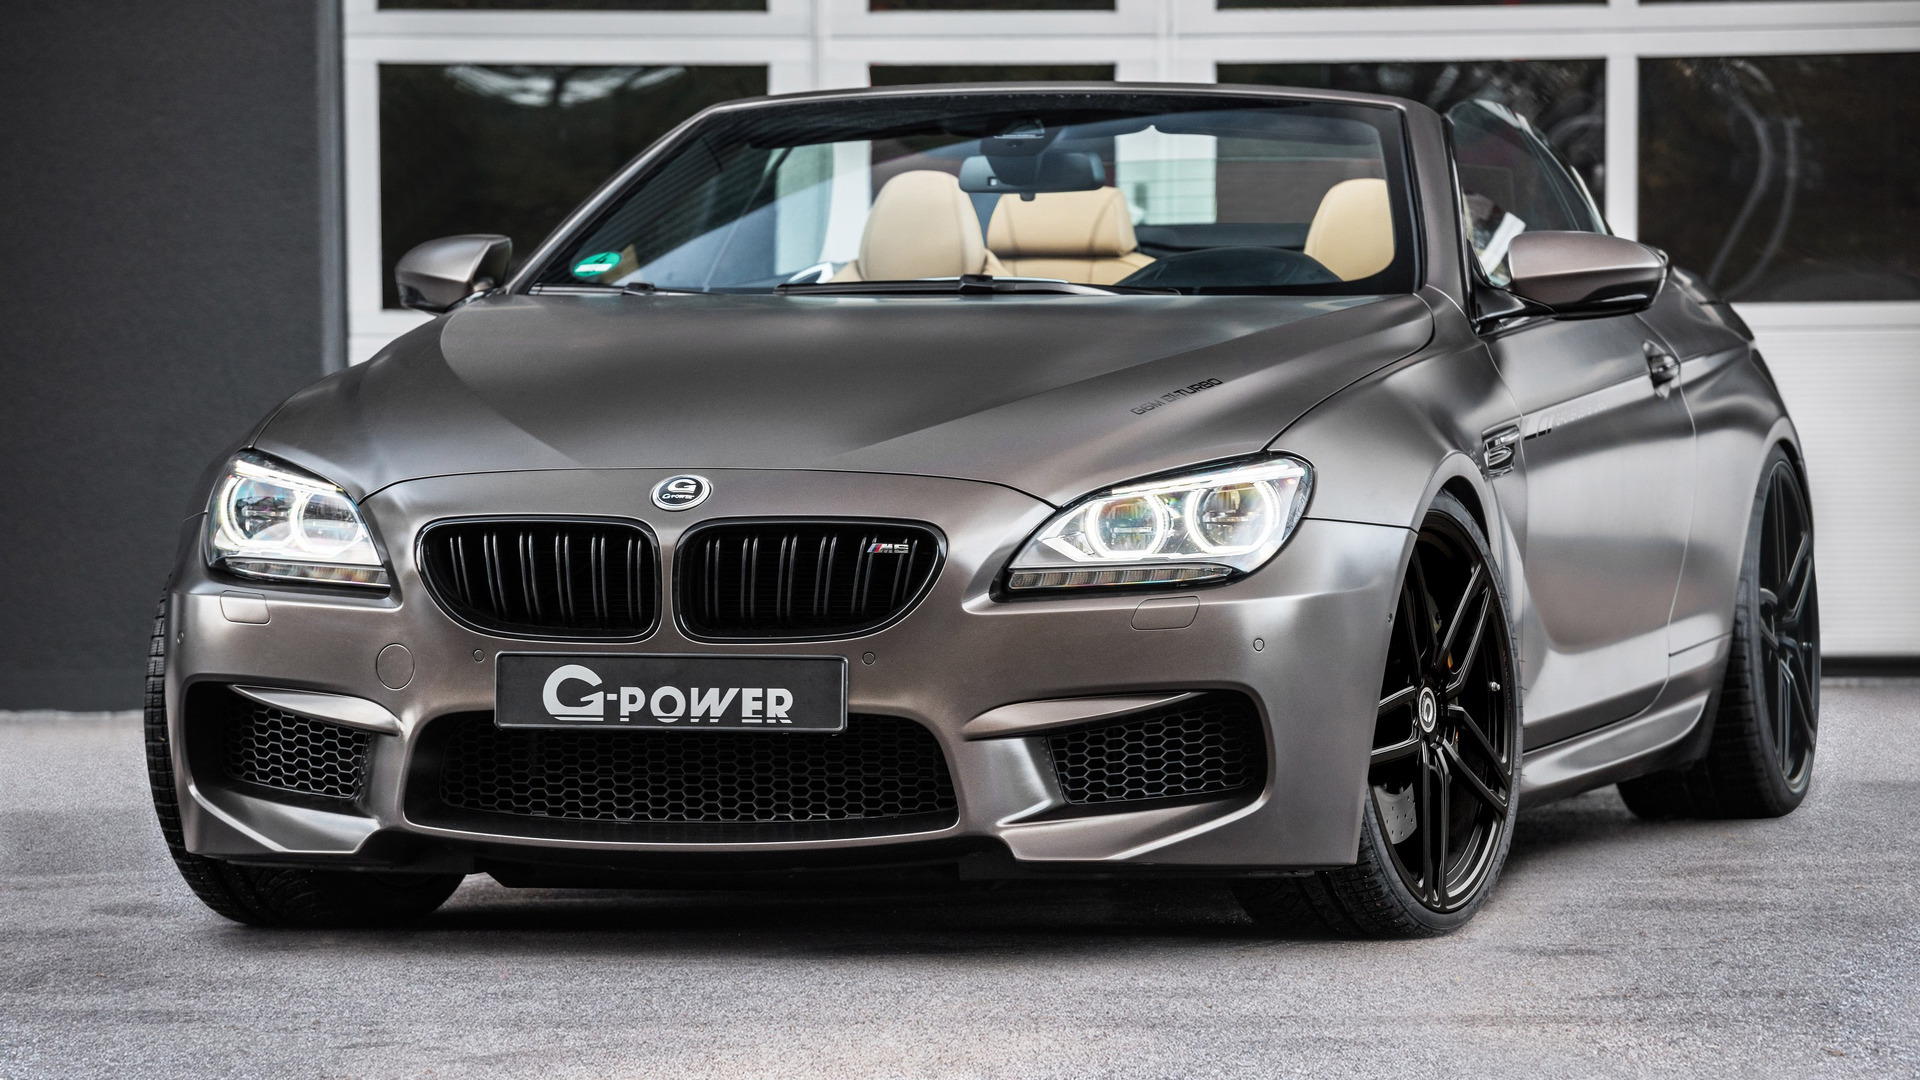 BMW M6 Convertible with Competition Package Upgrades by G-Power (12)